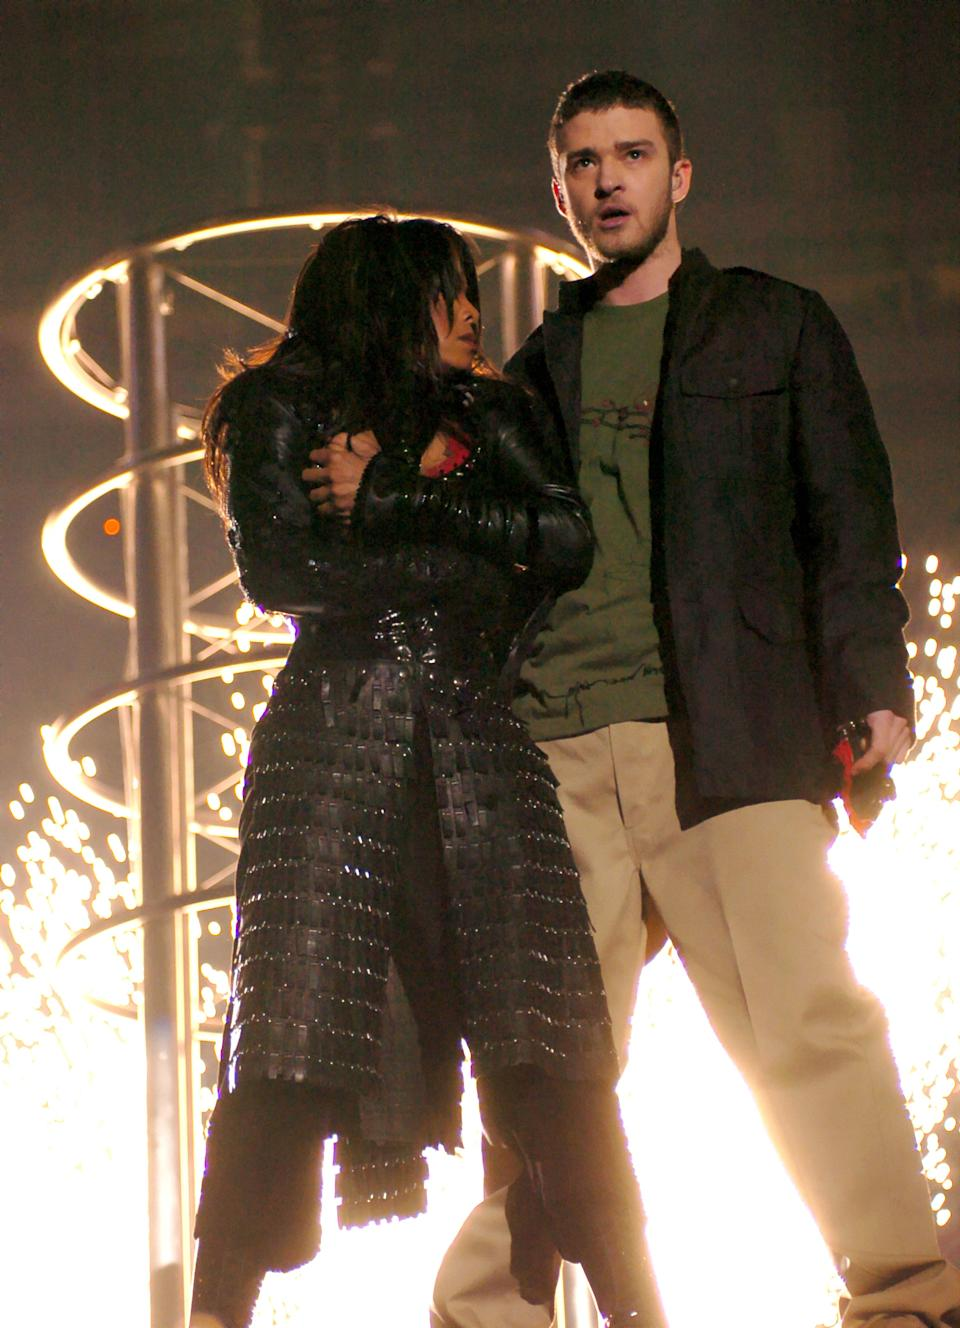 Janet Jackson and Justin Timberlake perform during the 2003 Super Bowl (Photo: KMazur via Getty Images)